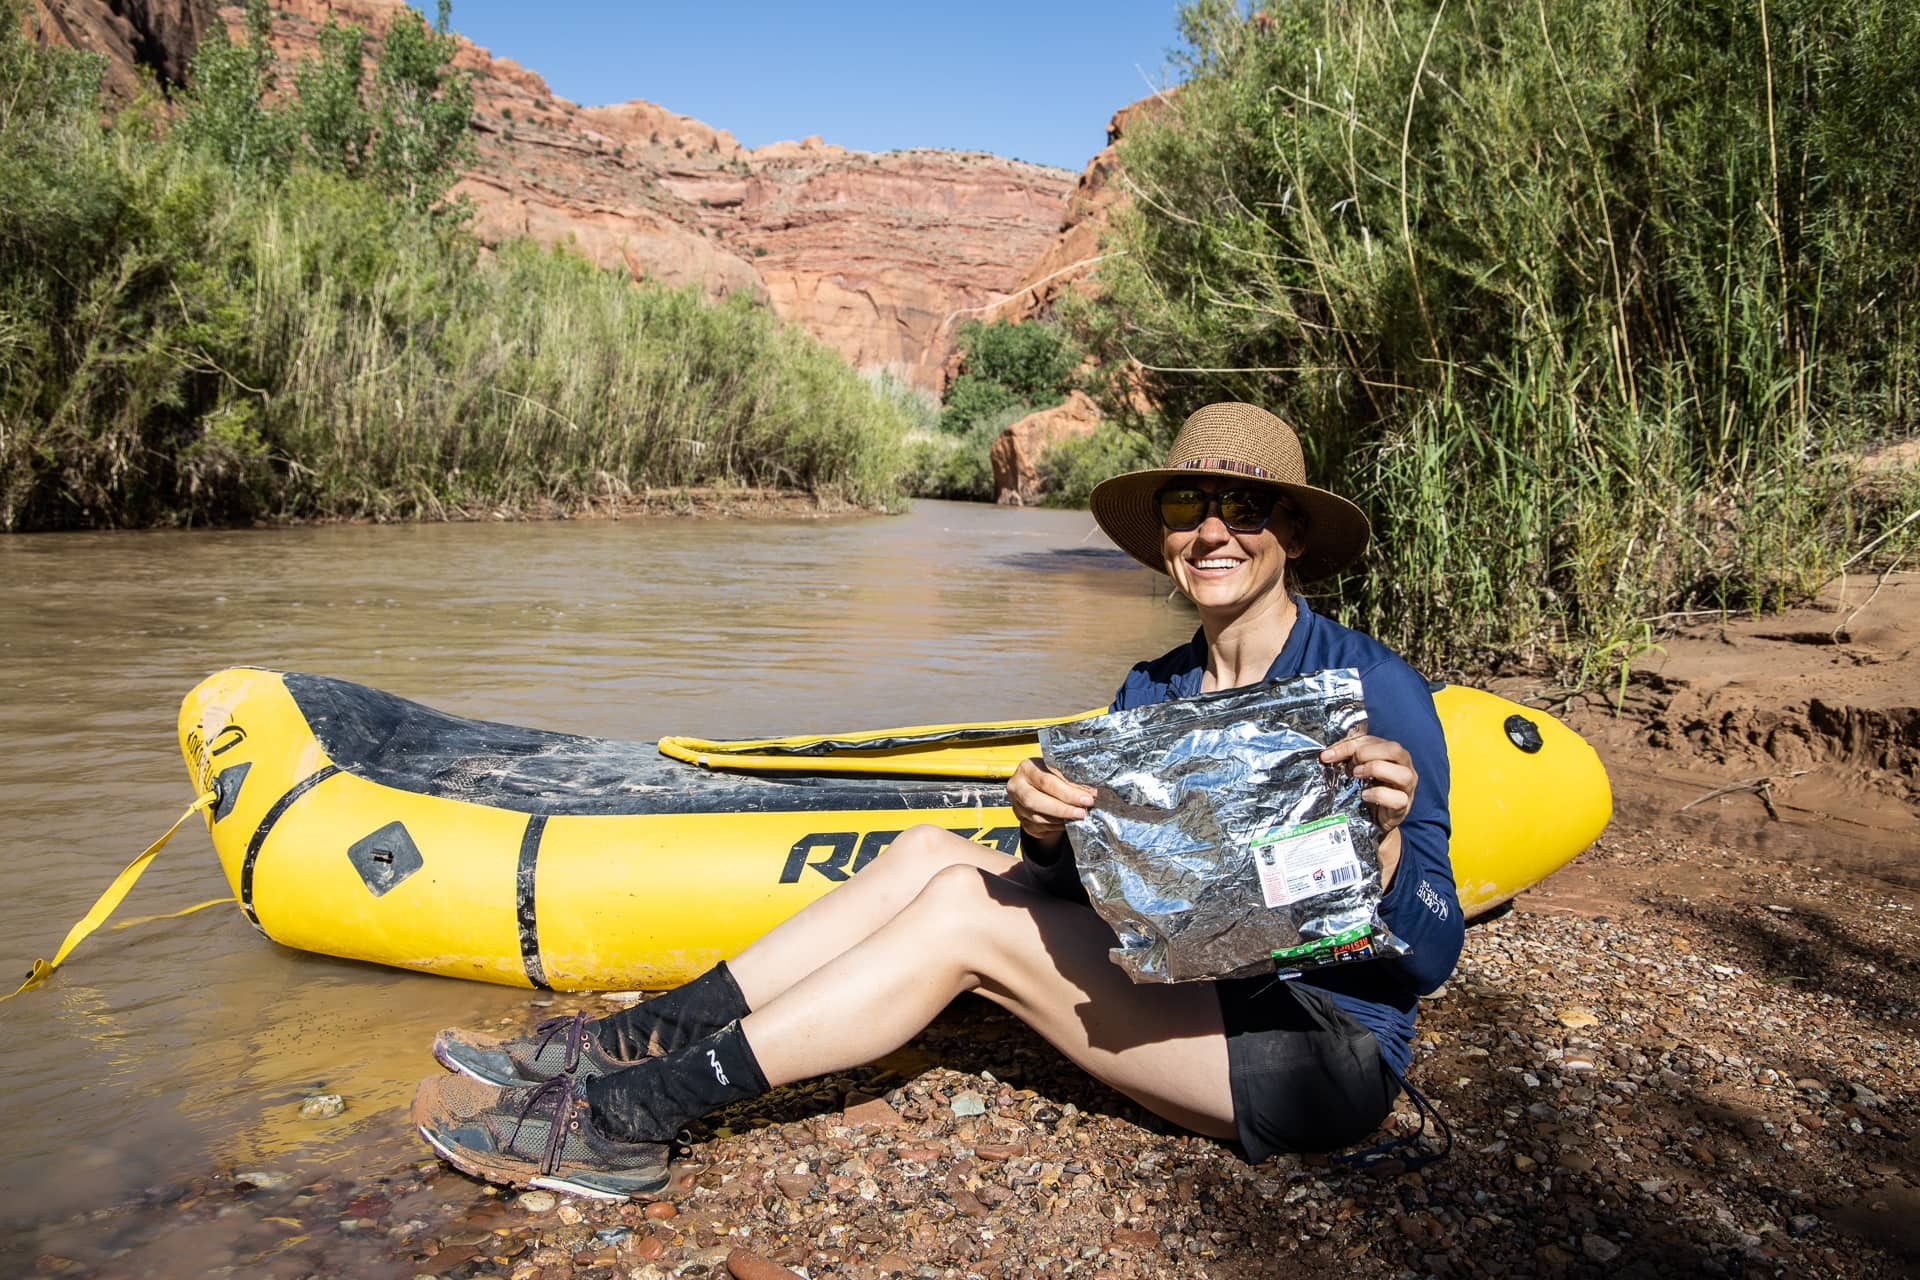 Wagbags are required when packrafting the Escalante River